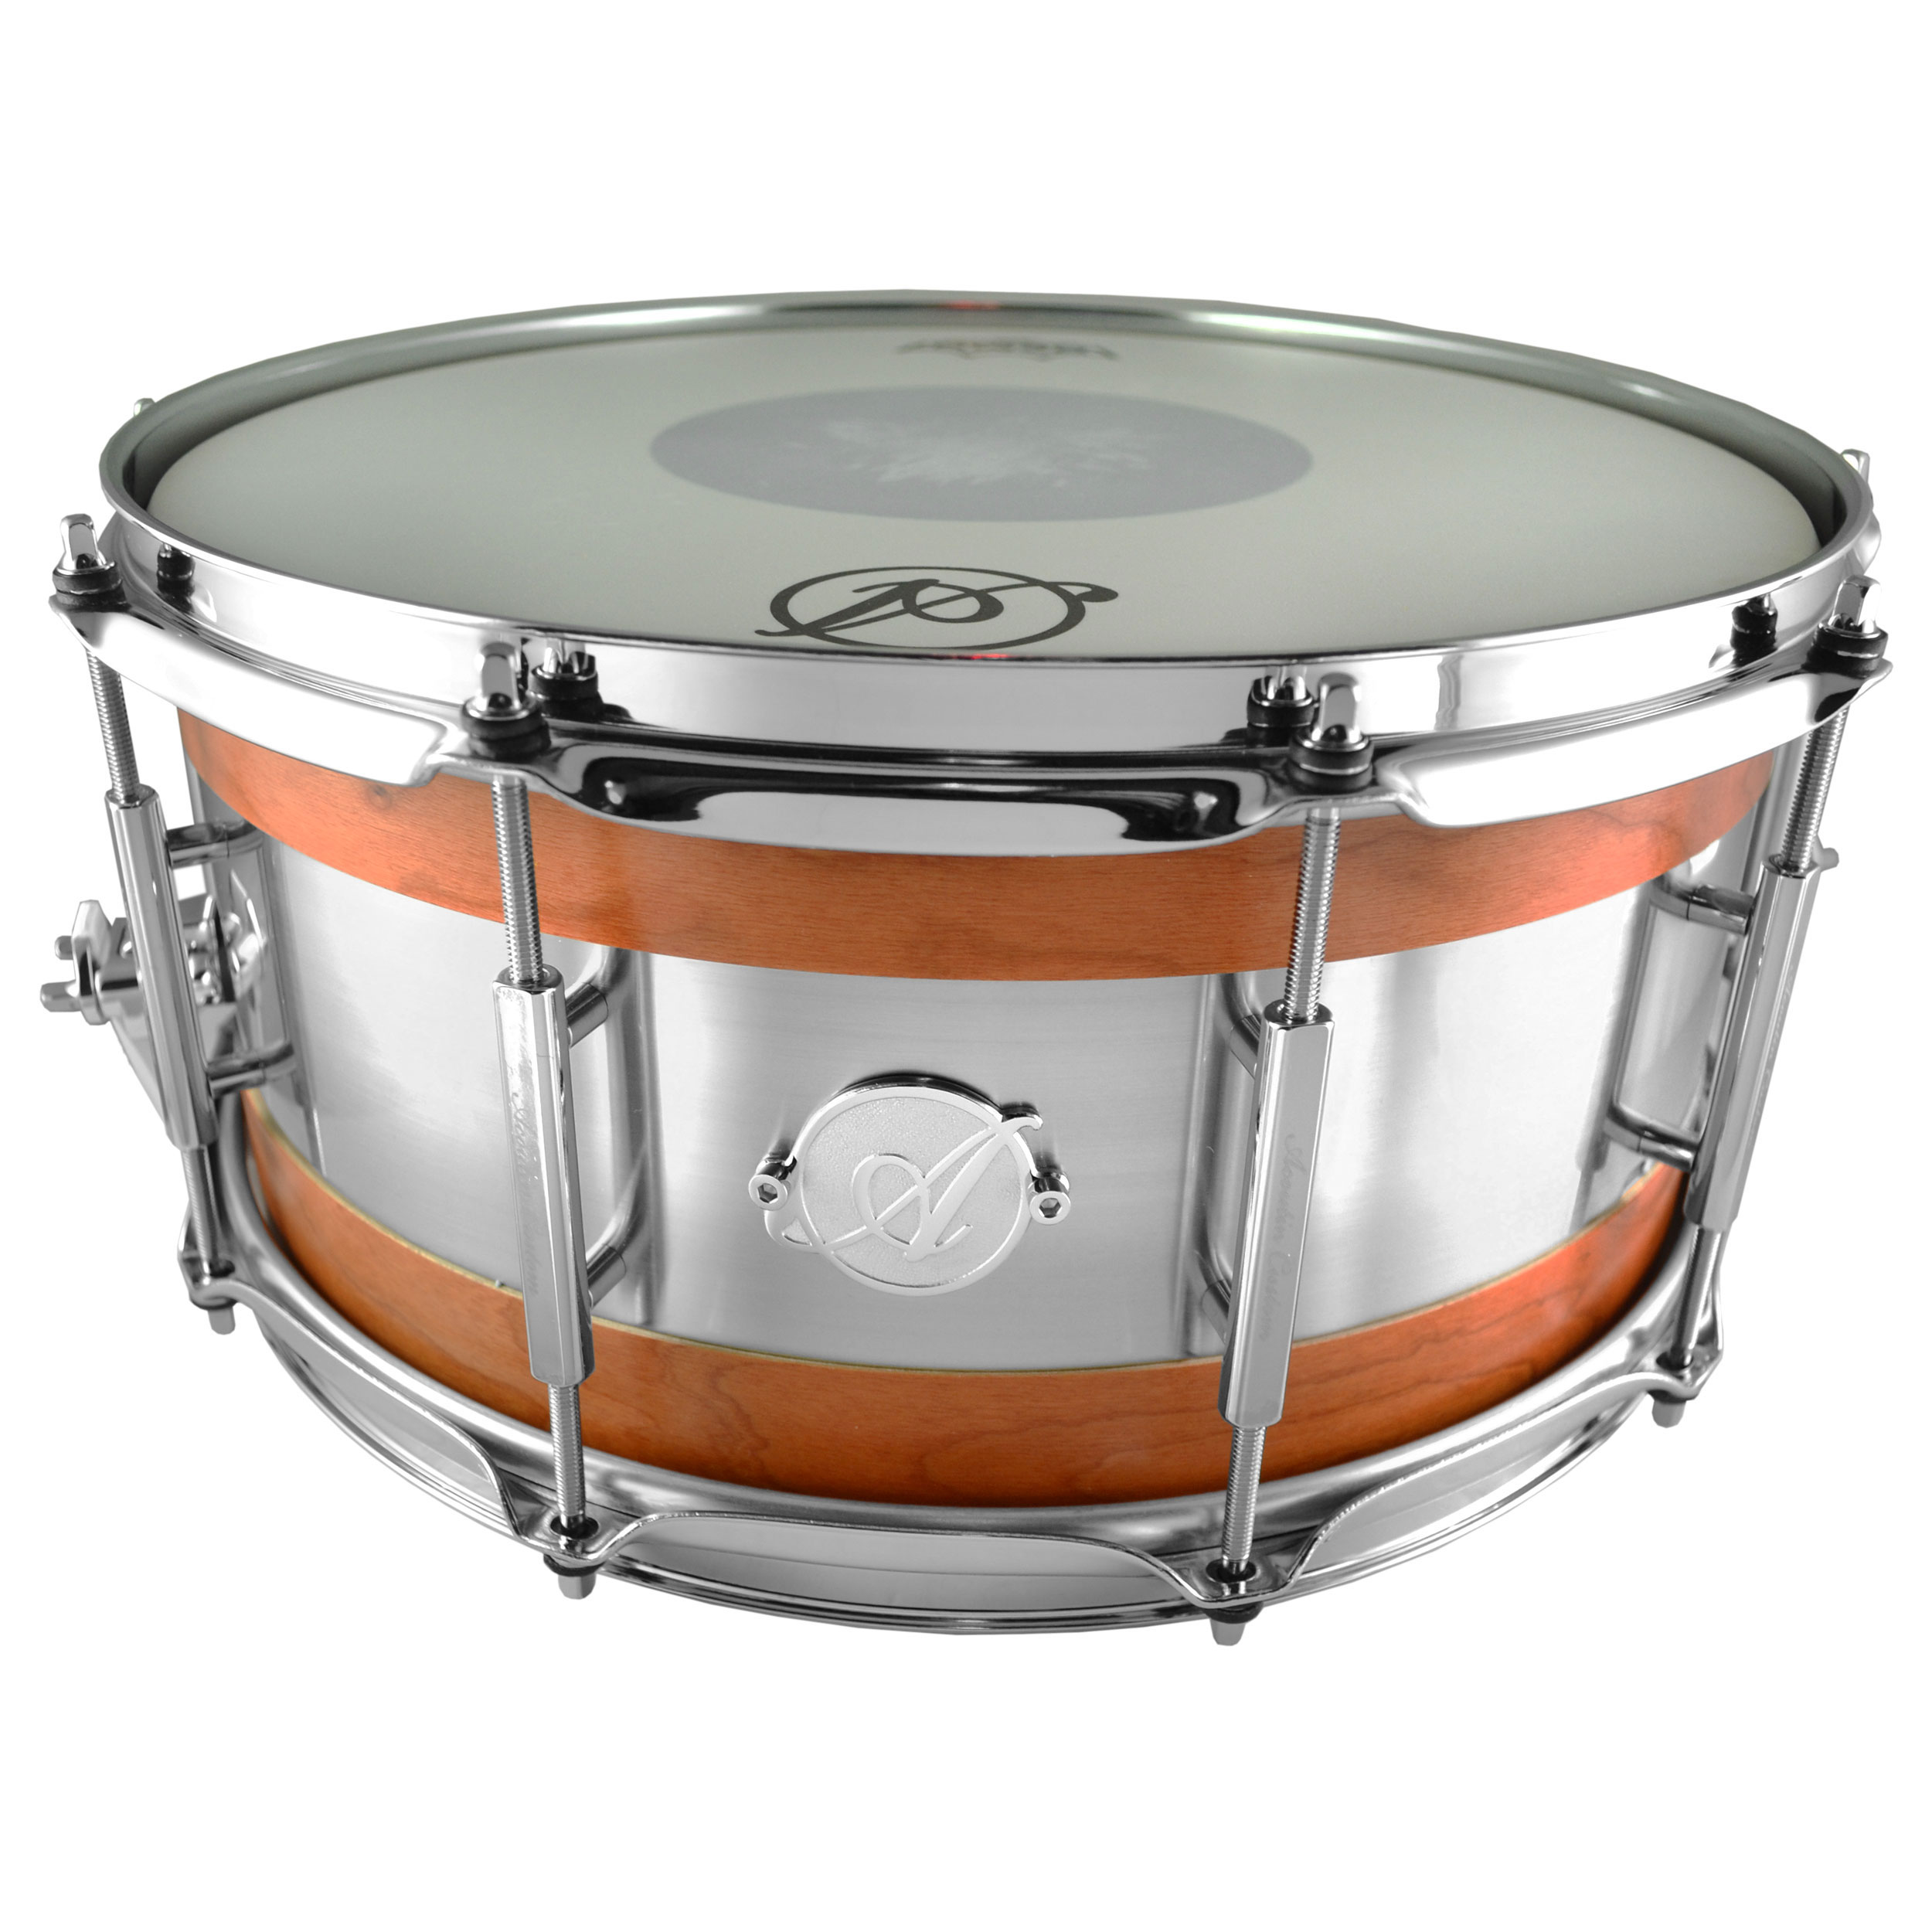 """Acoutin 6.5"""" x 14"""" Cherry & Brushed Stainless Steel Snare Drum in Matte Lacquer"""